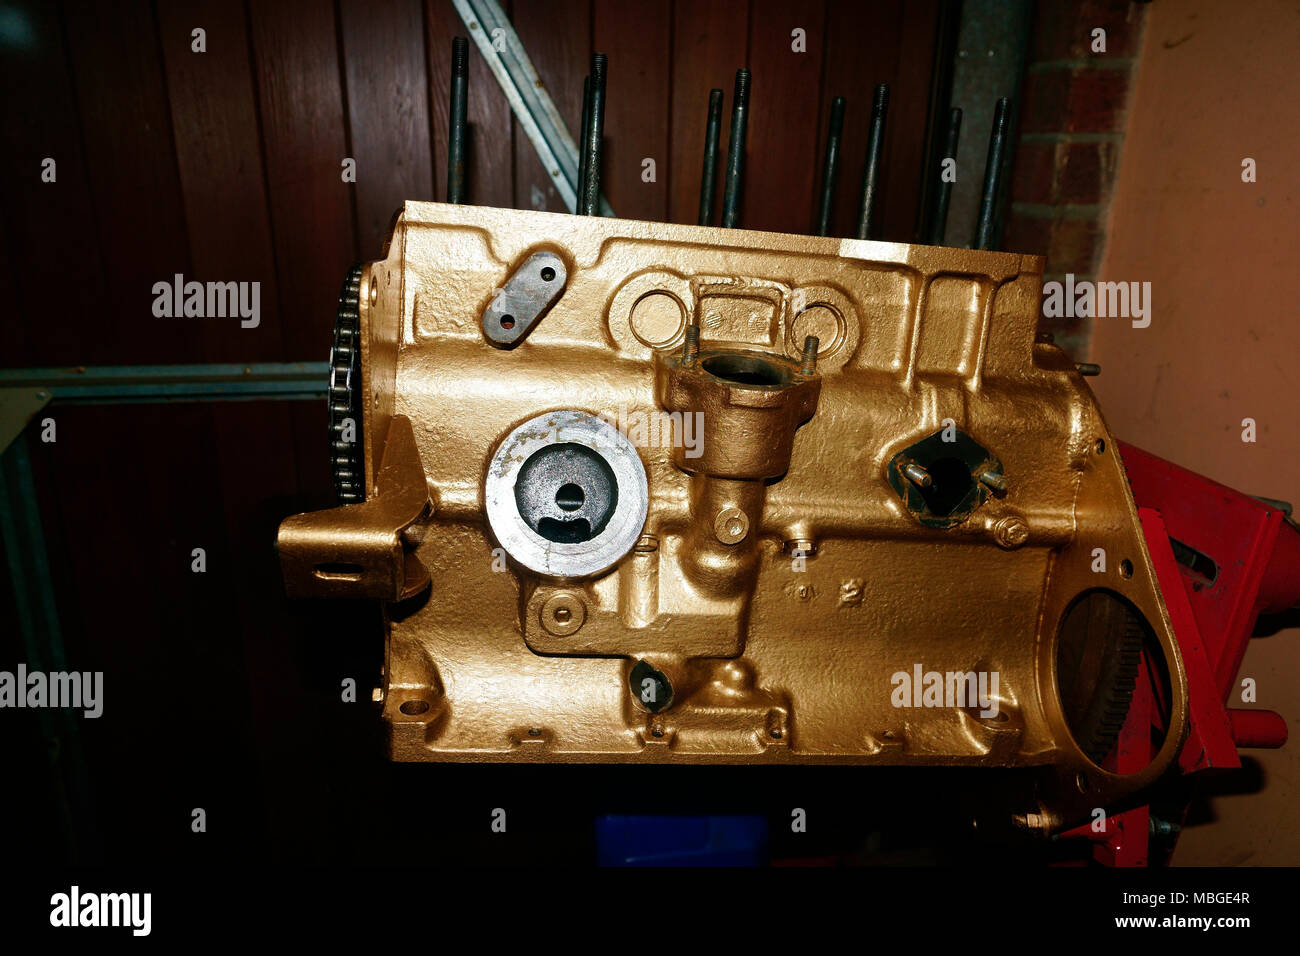 Triumph Spitfire Engine Block Mk Iv 1296cc Repainted Old Gold Stock